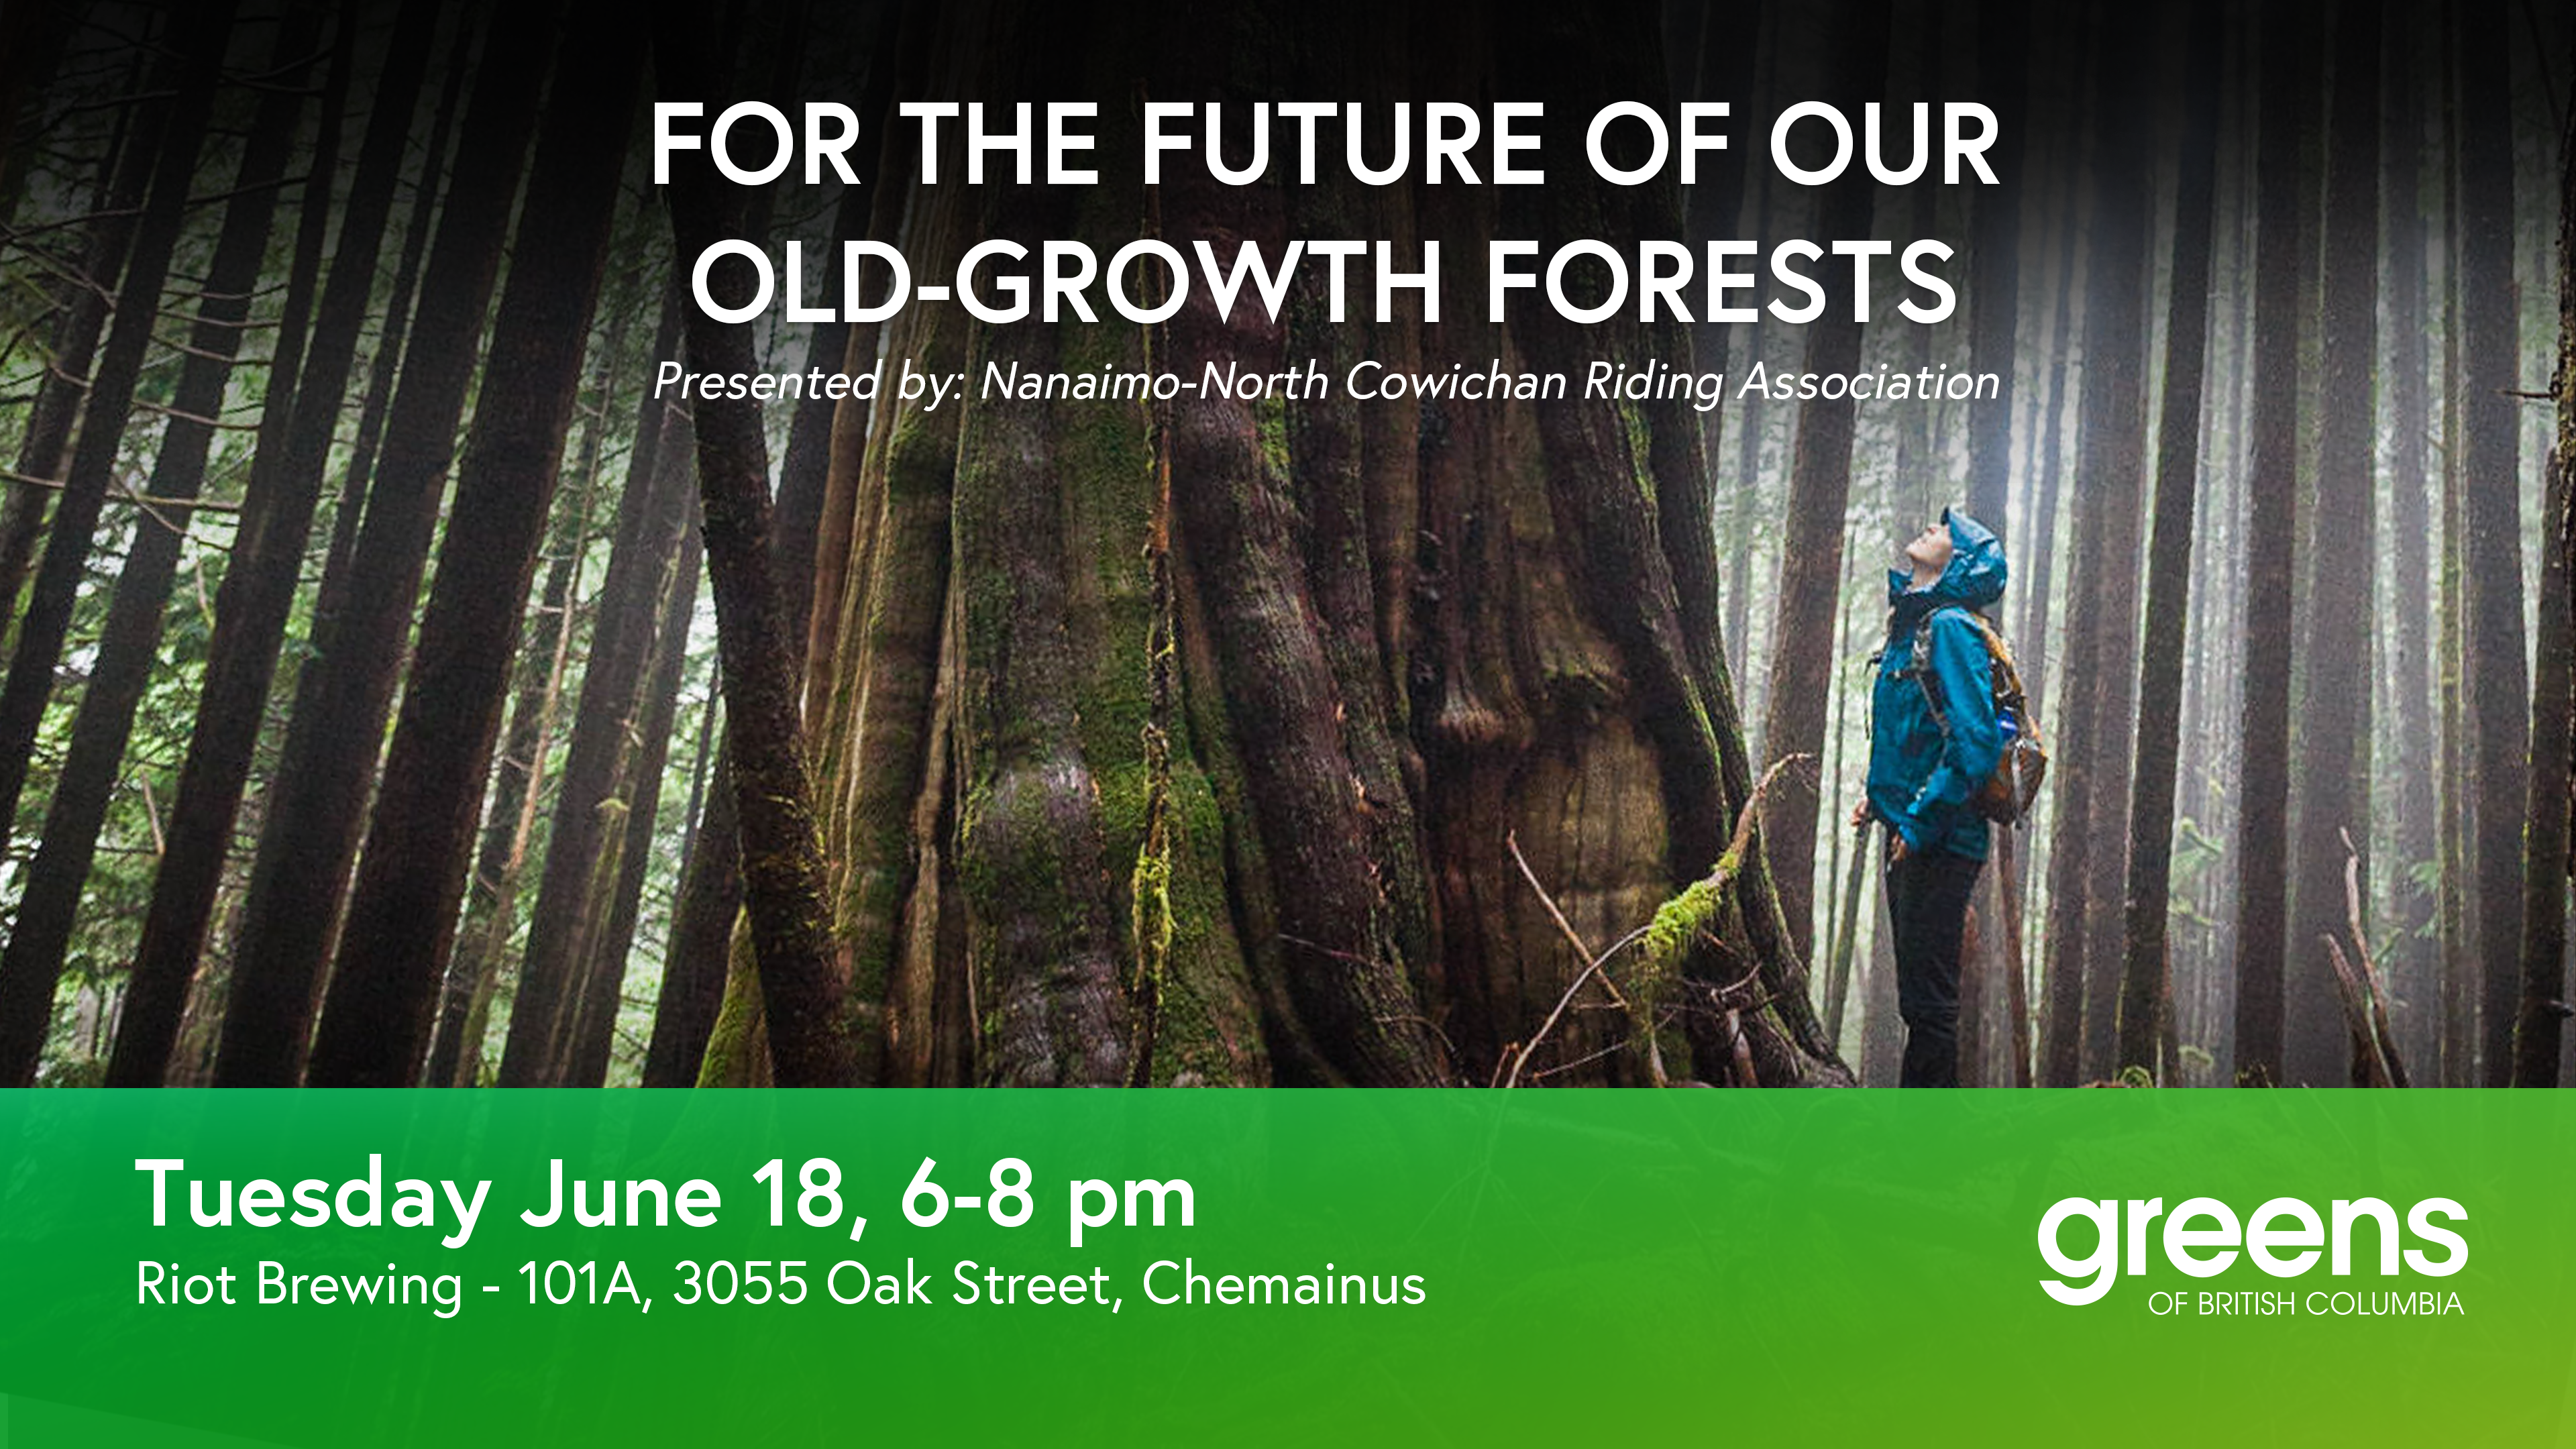 190612-For-the-future-of-our-old-growth-forestsFacebook-Event-Photo.png